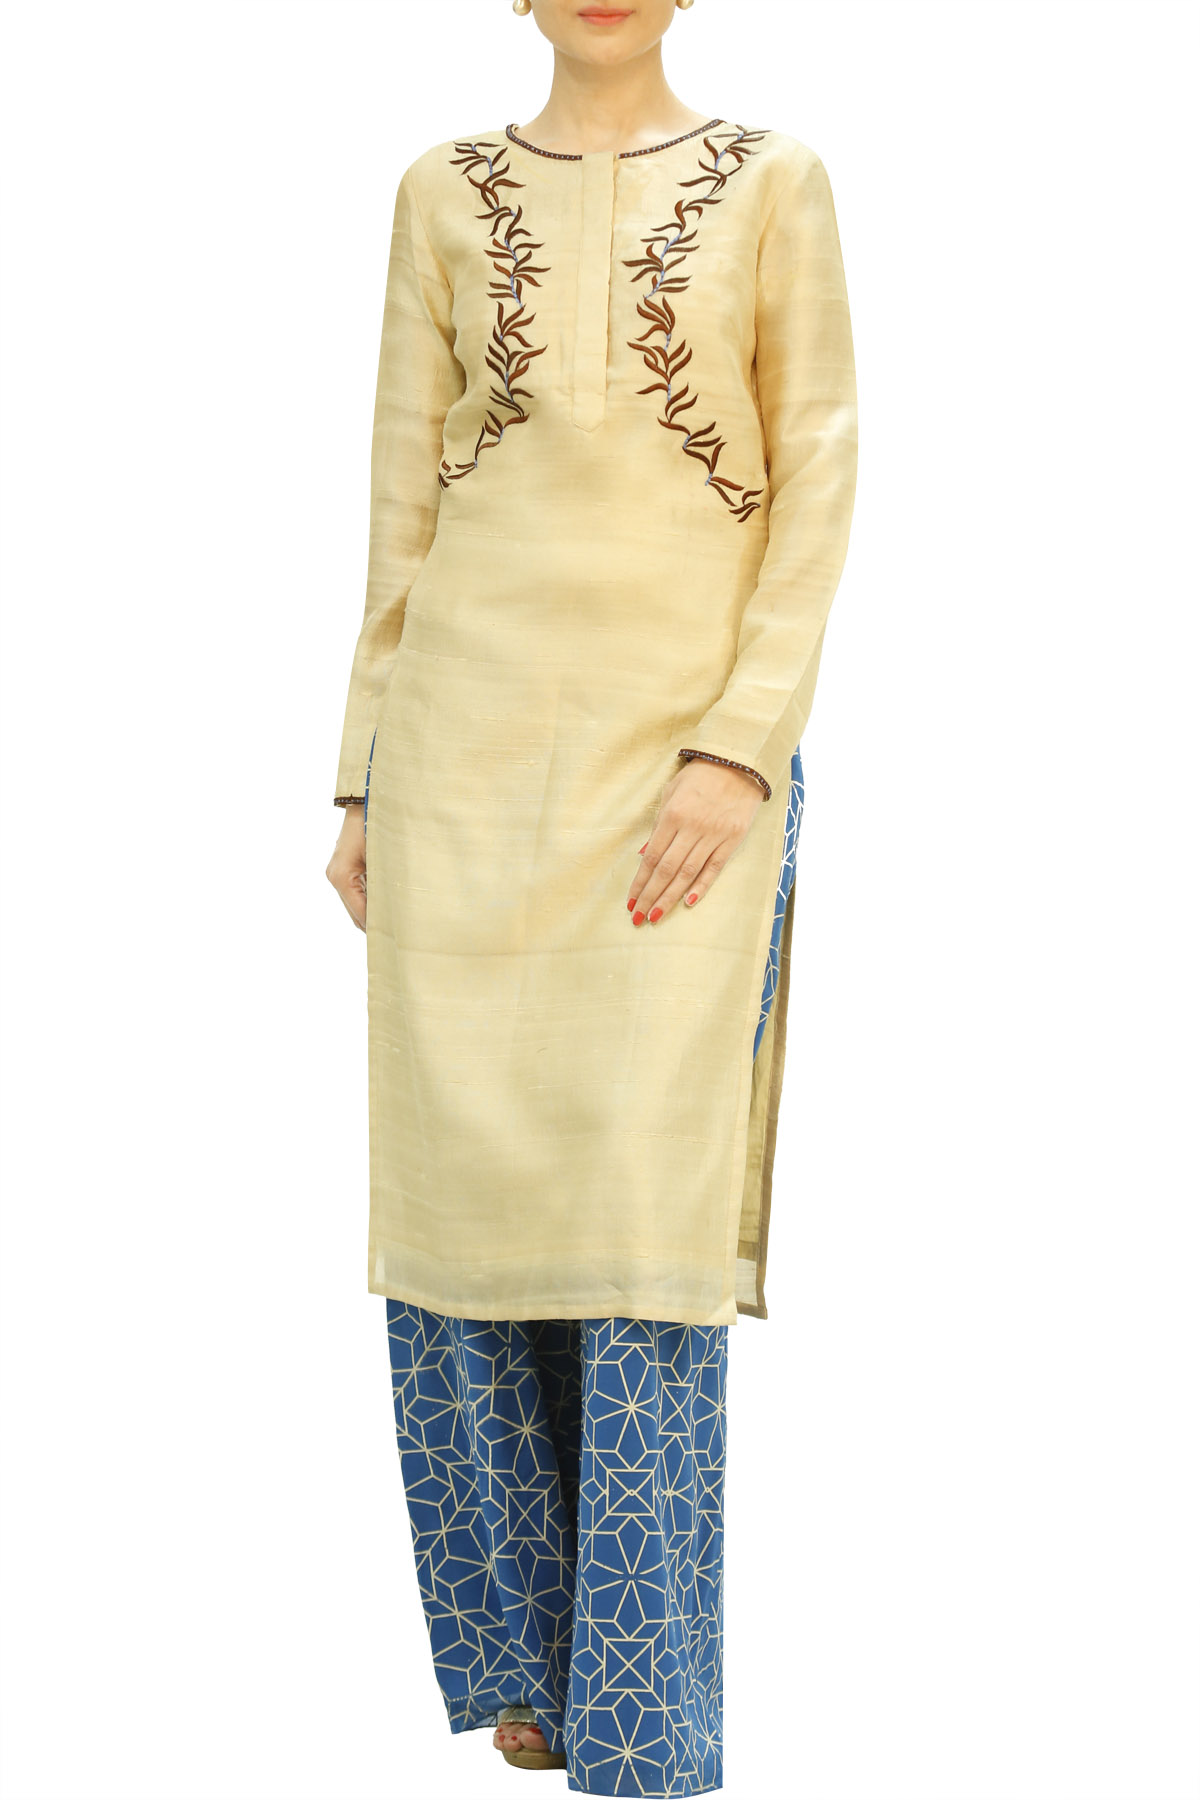 Bamboo Motif EmbroideRed Off White Kurta with Blue Palazzo